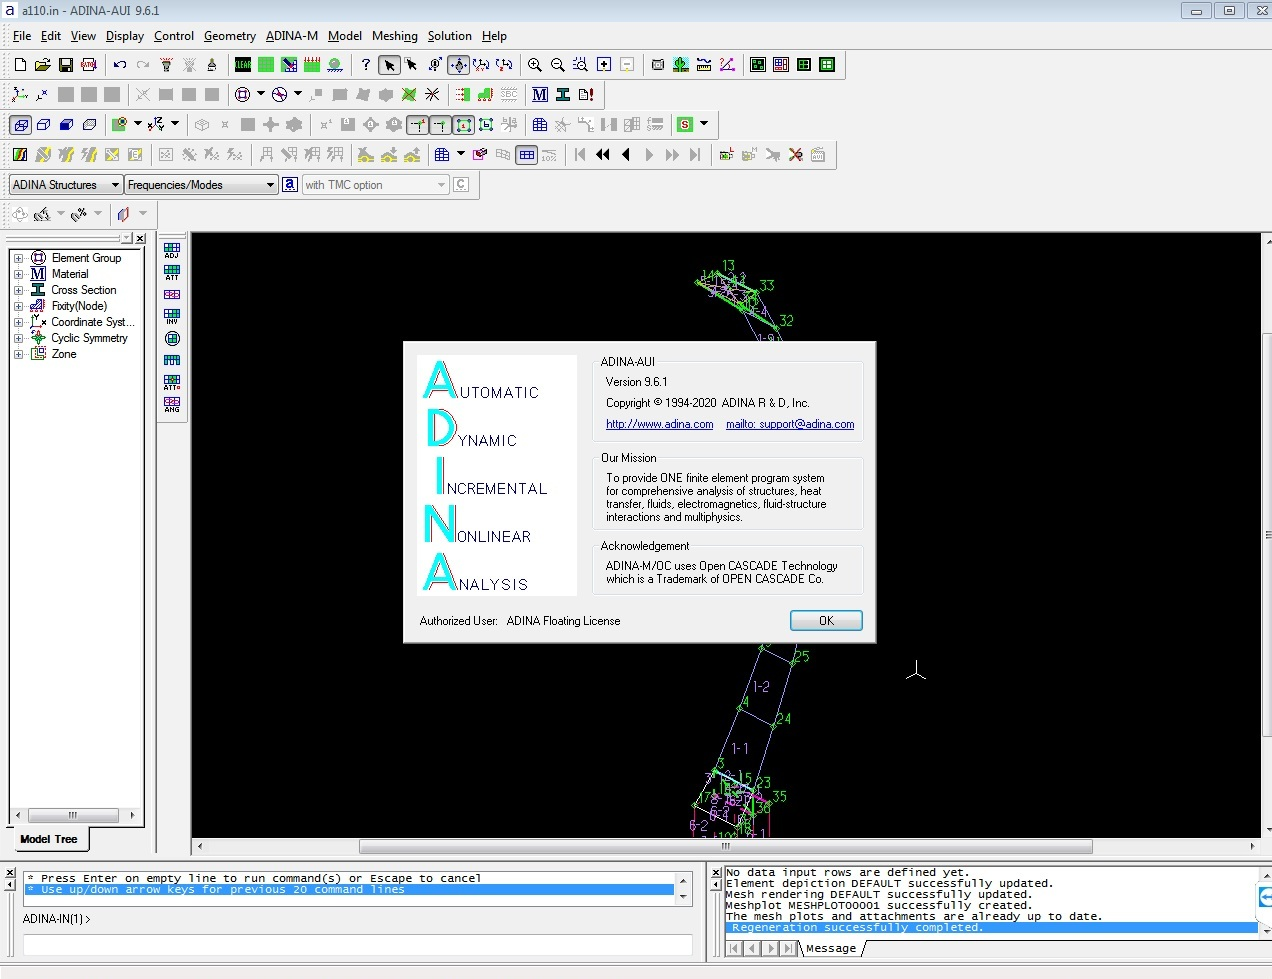 Working with ADINA System 9.6.1 full license